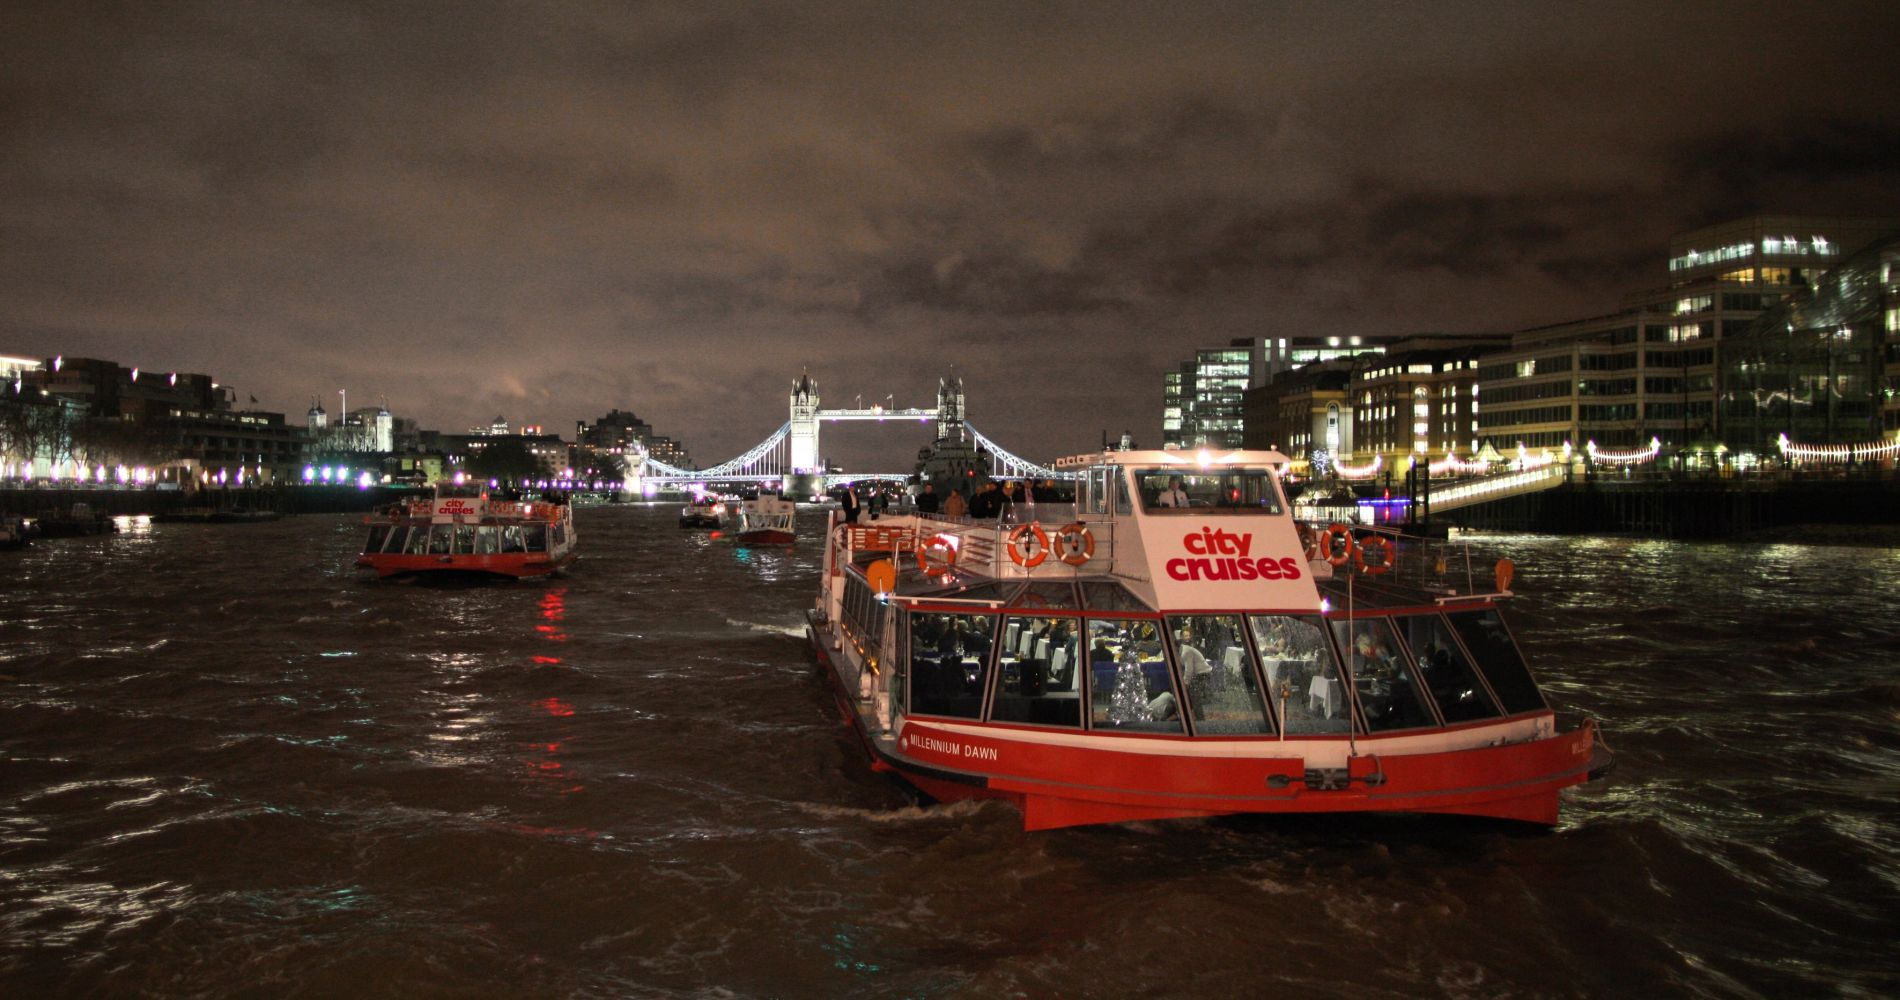 London's Showboat Dinner Cruise for Two